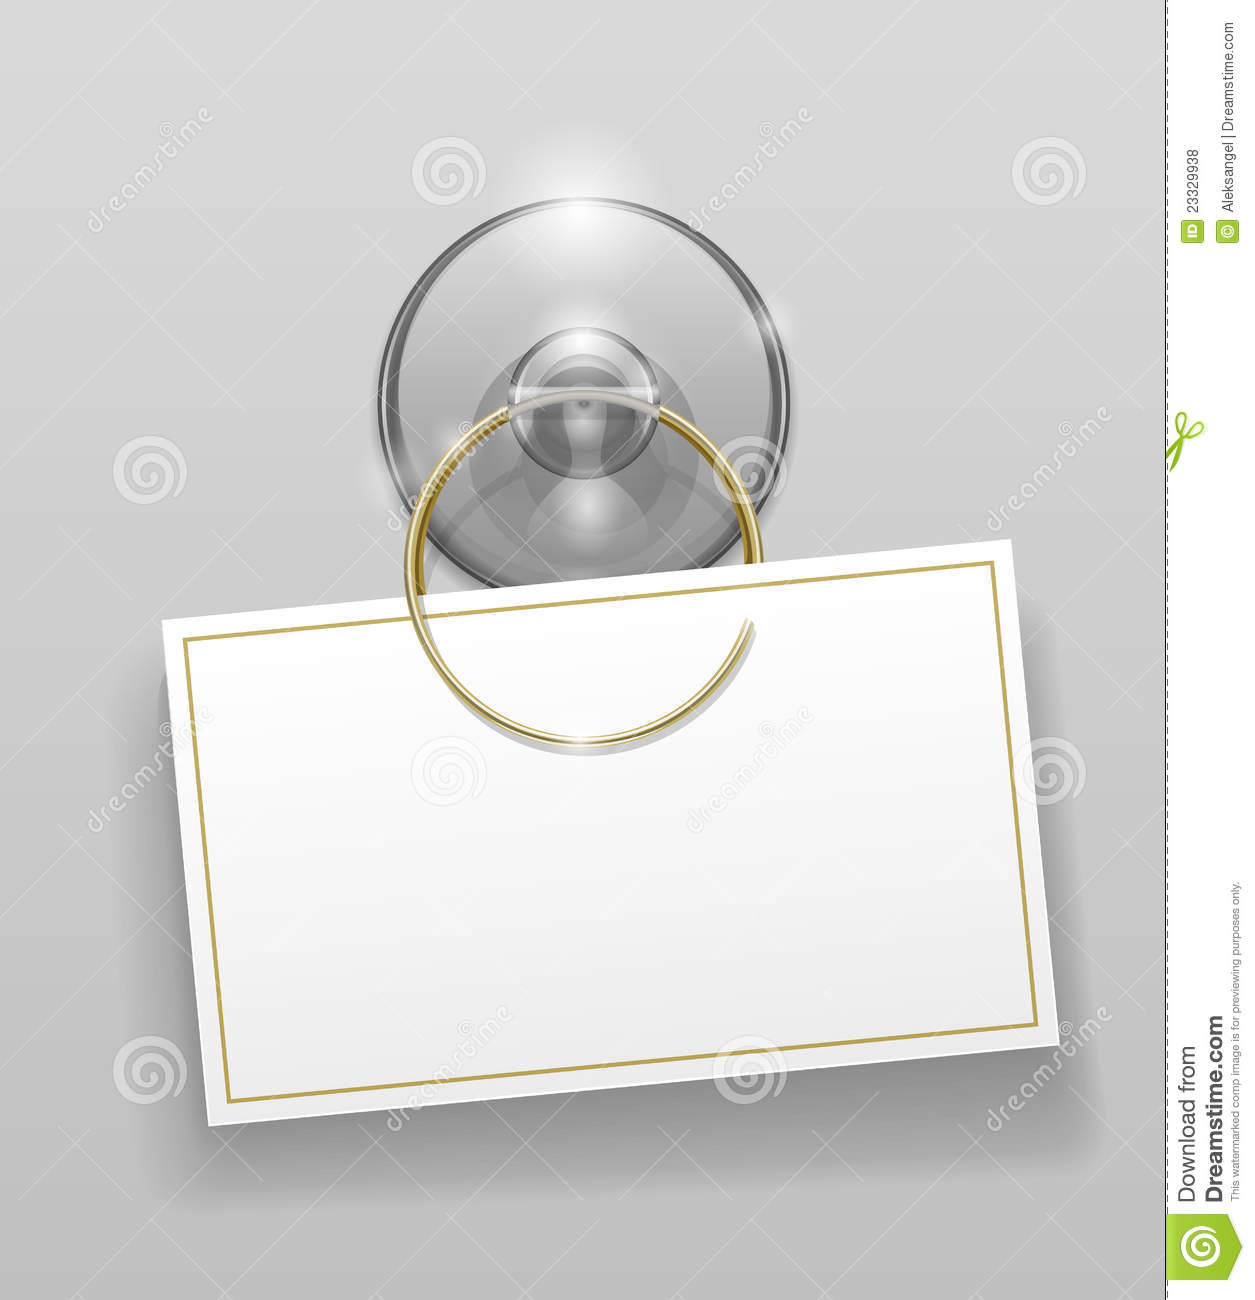 Silicone Suction Cup With Badge Royalty Free Stock Photos.